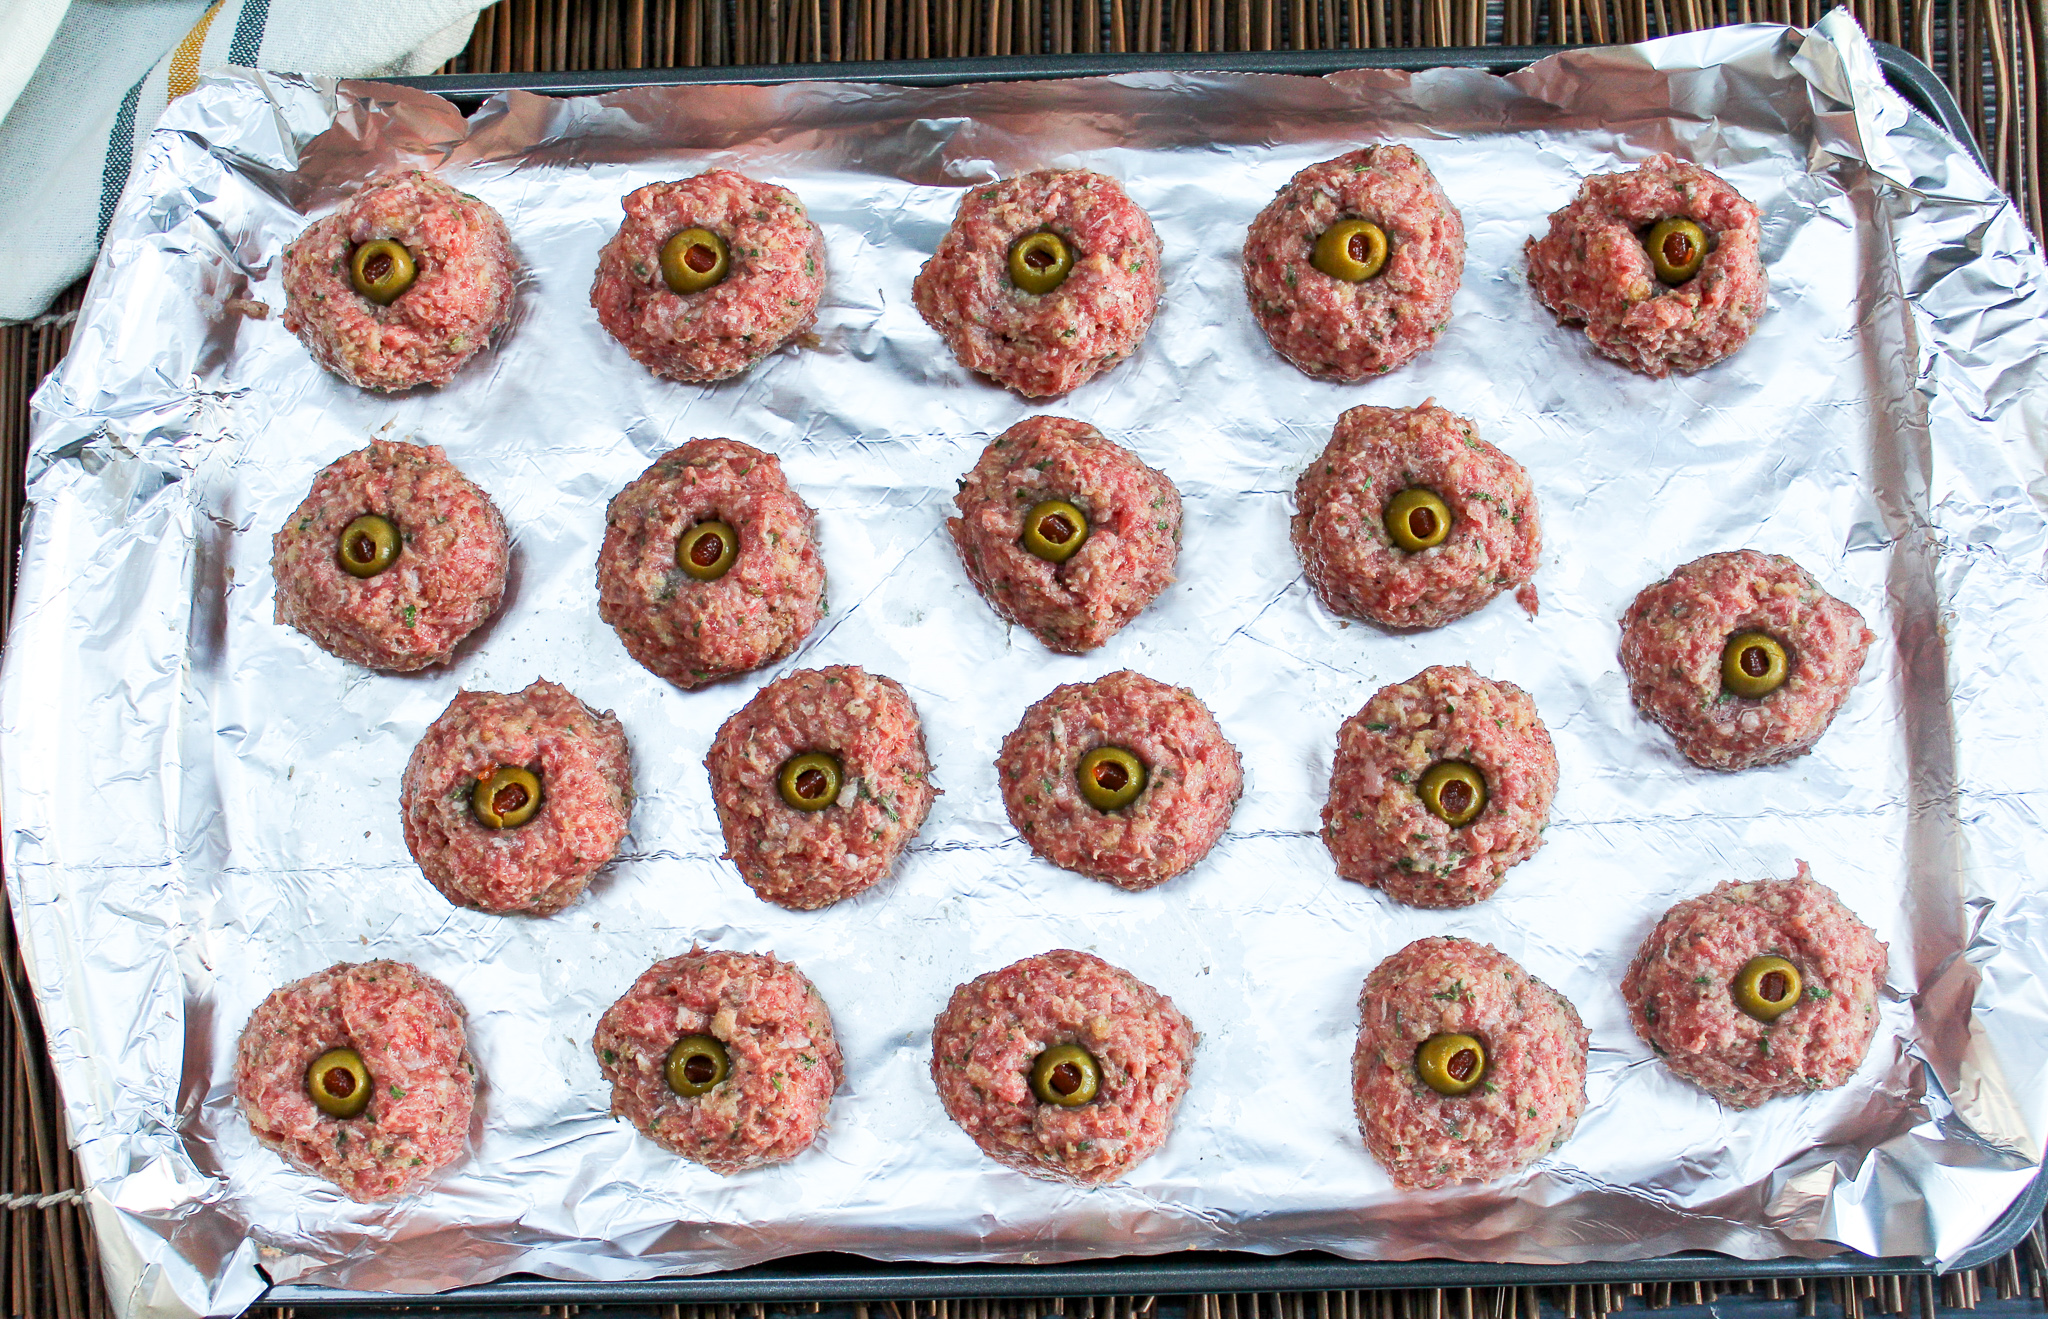 meatballs on a tray